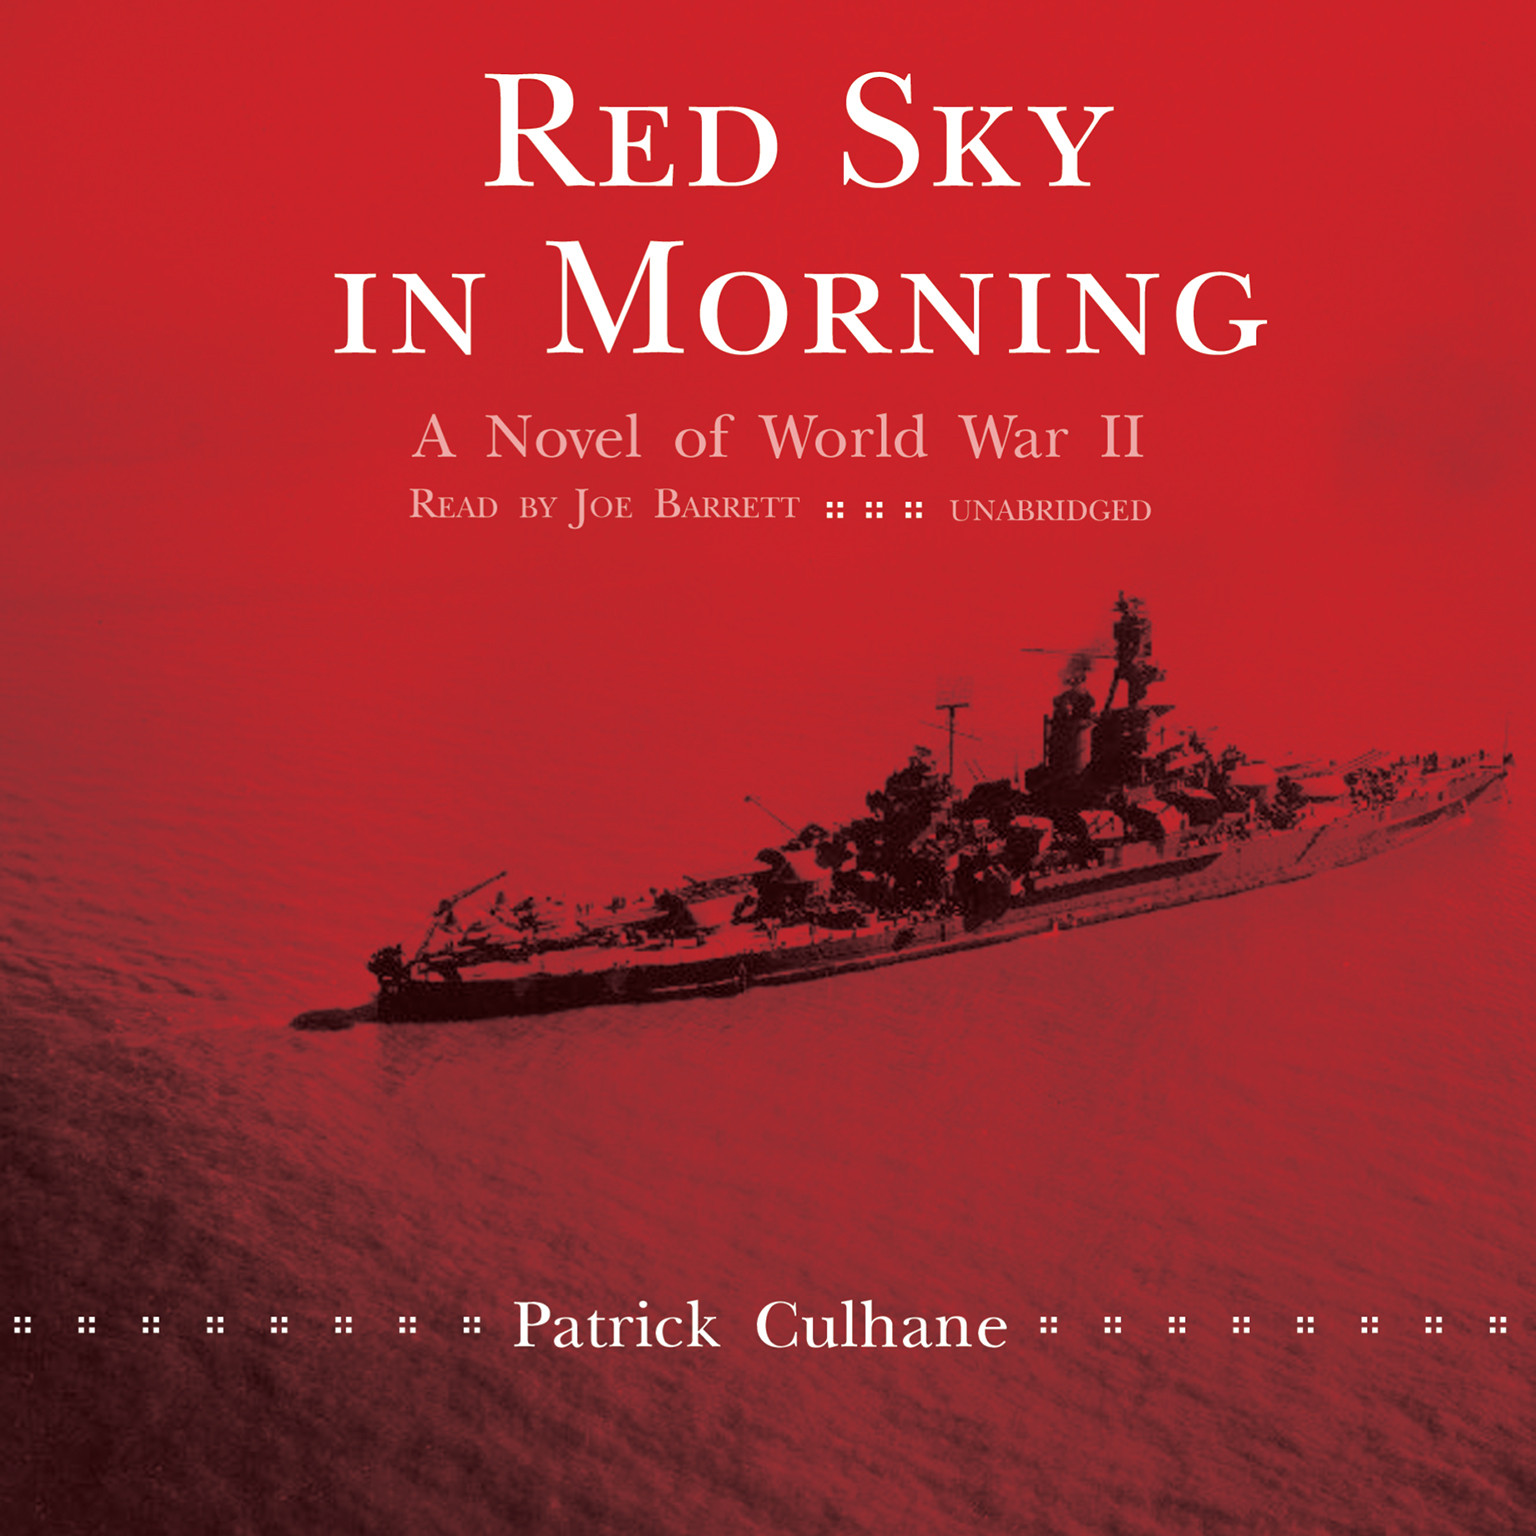 Printable Red Sky in Morning: A Novel of World War II Audiobook Cover Art